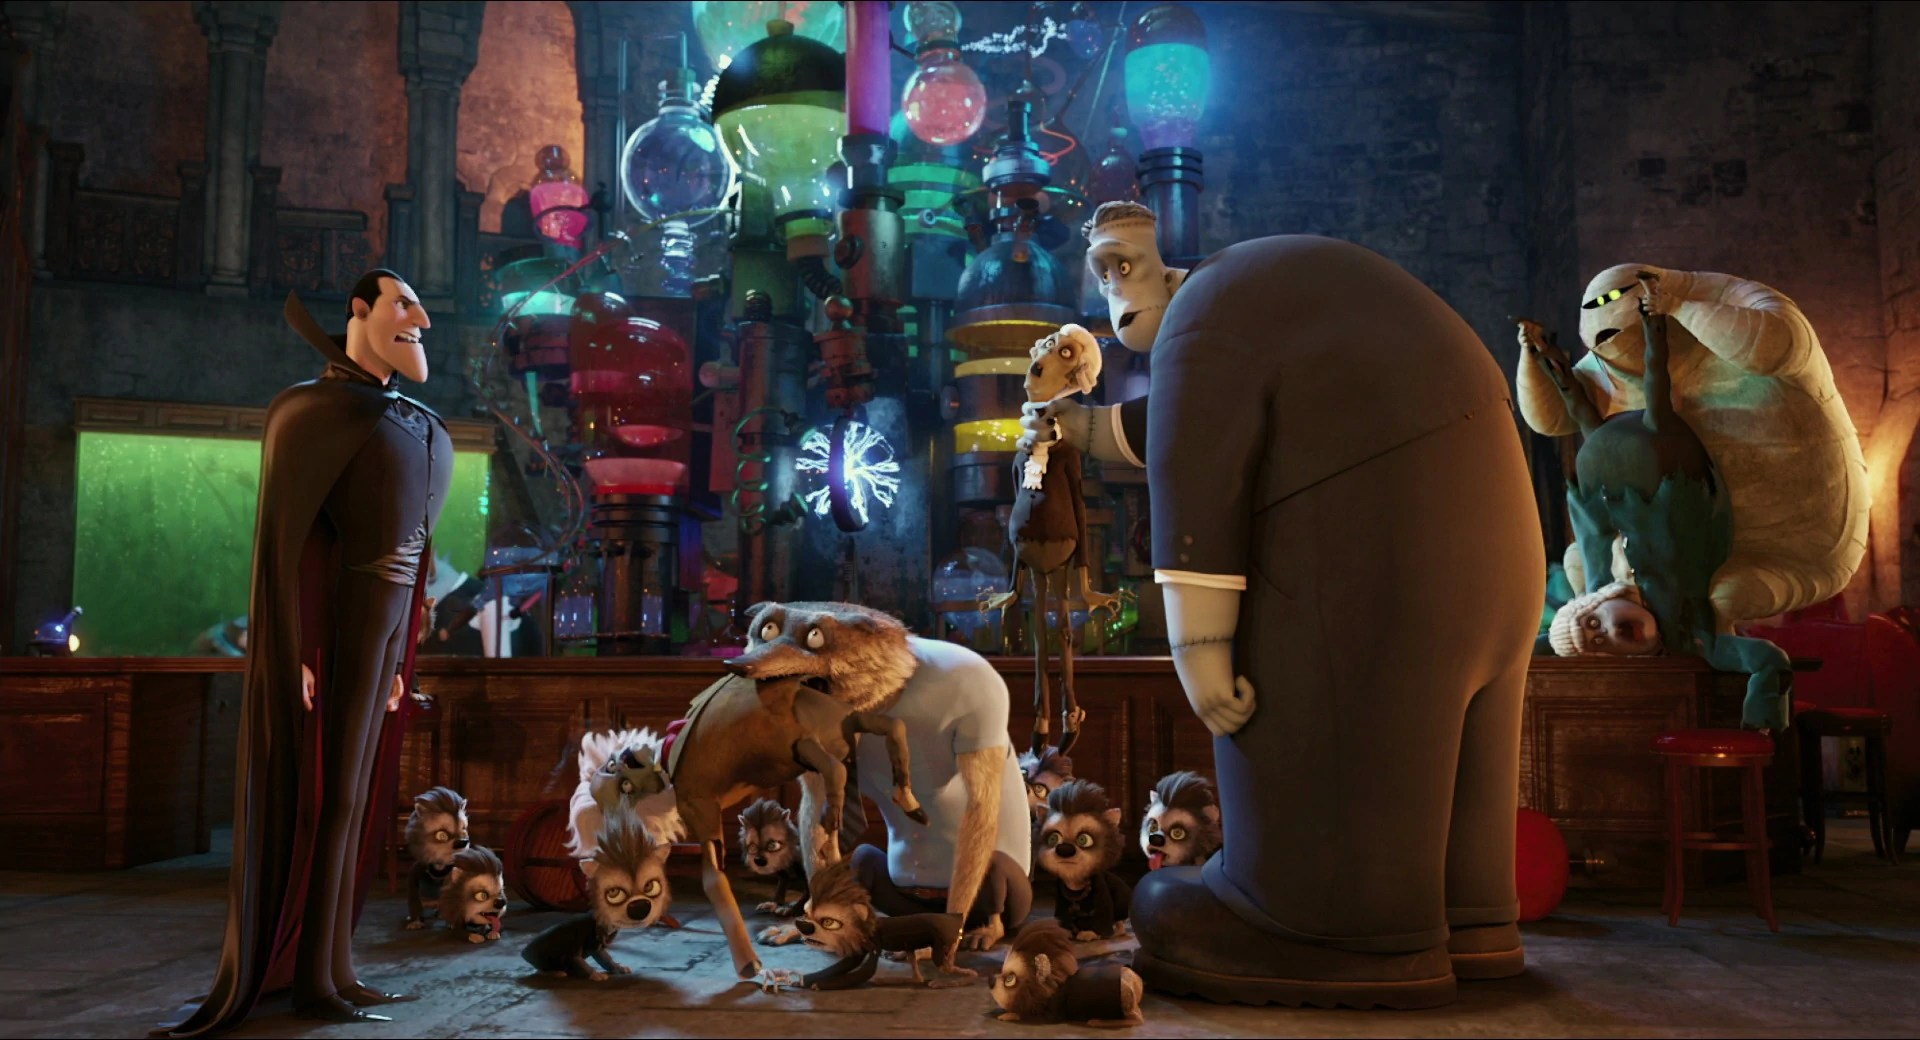 Hotel Transylvania Monsters 2